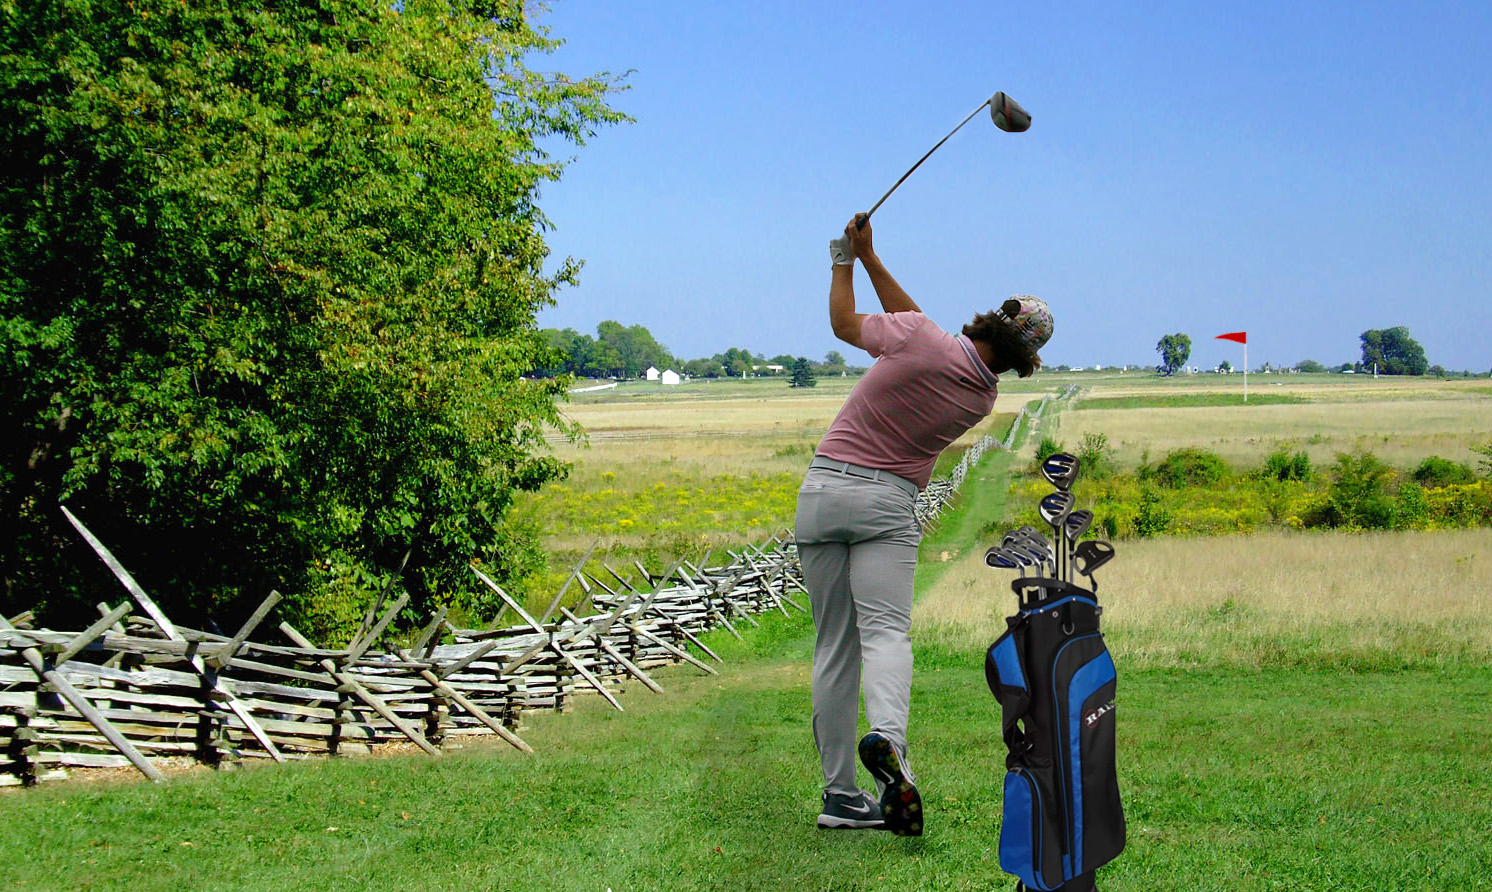 Gettysburg Battlefield is set to be remodeled into a golf course. (Photo Allyson Frantz/The Gettysburgian)